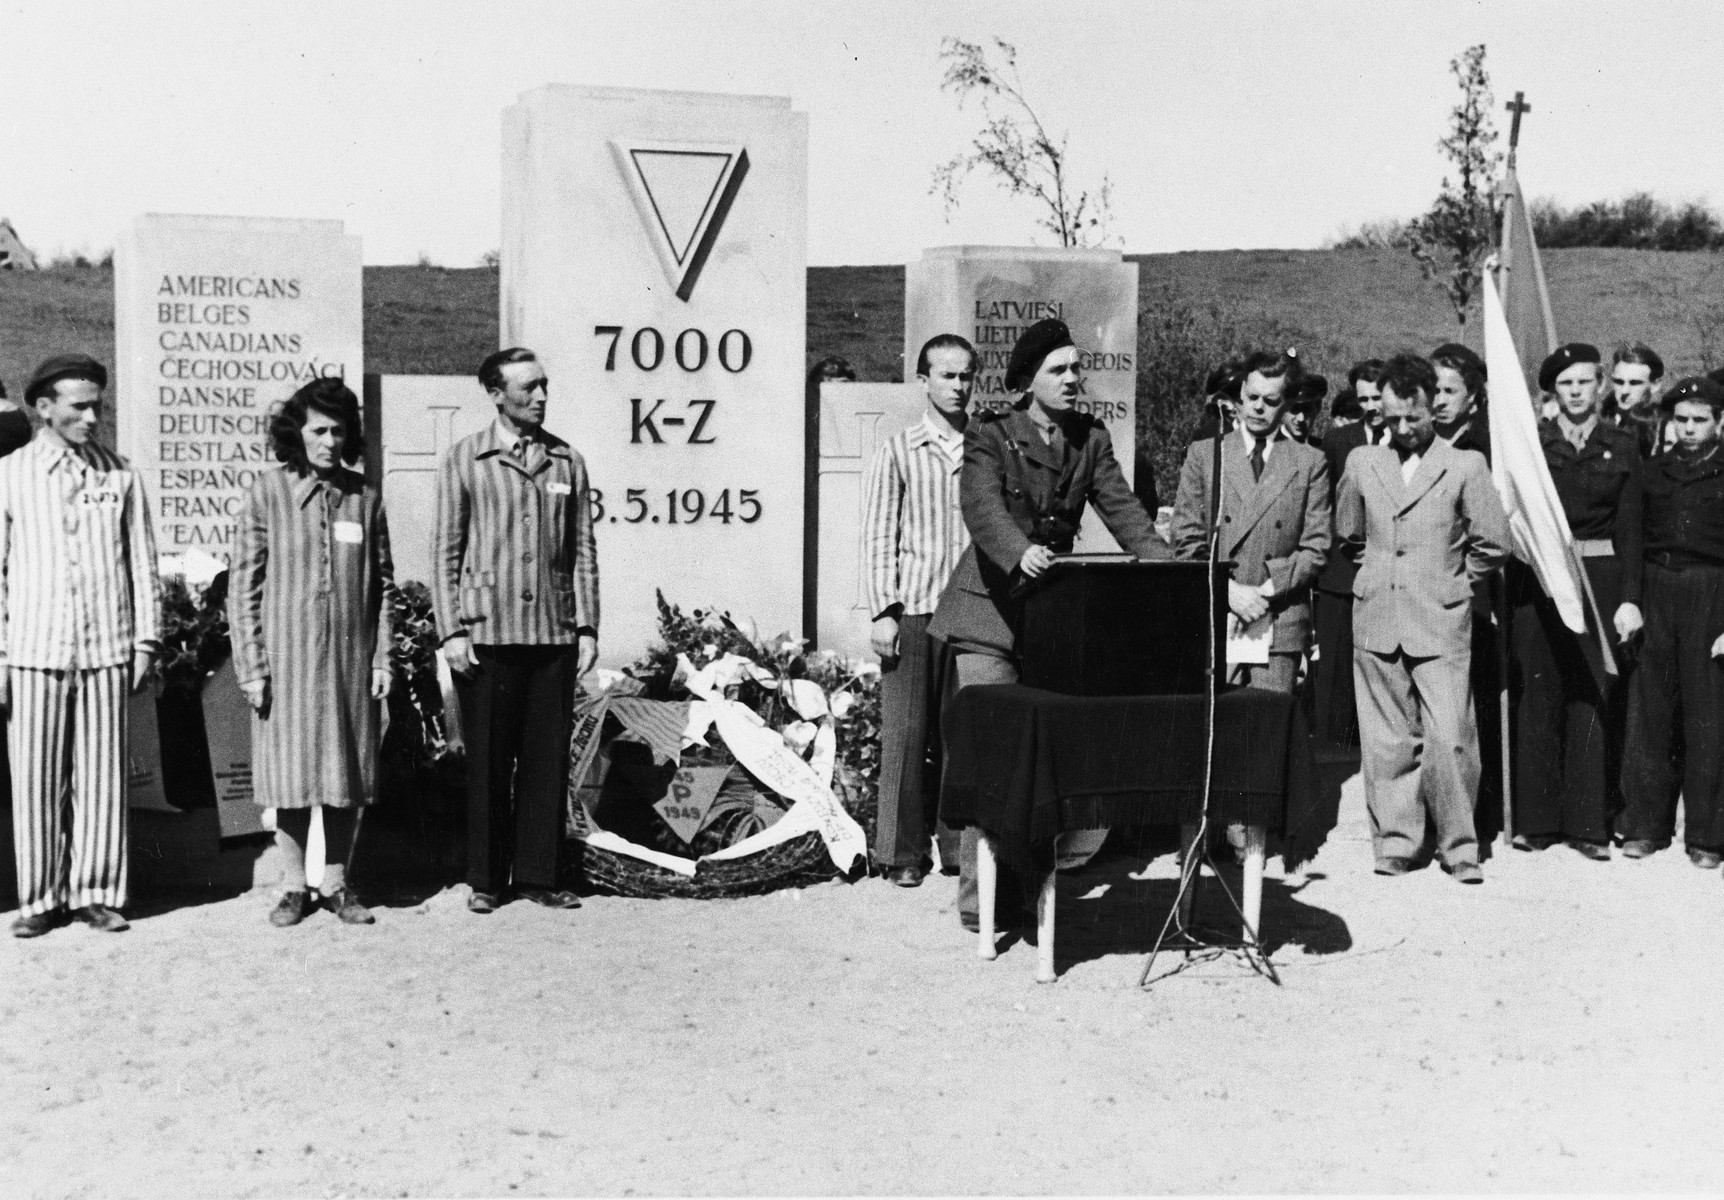 Jewish displaced persons, many wearing concentration camp uniforms, attend a memorial service for the 7000 prisoners who perished in Neustadt.